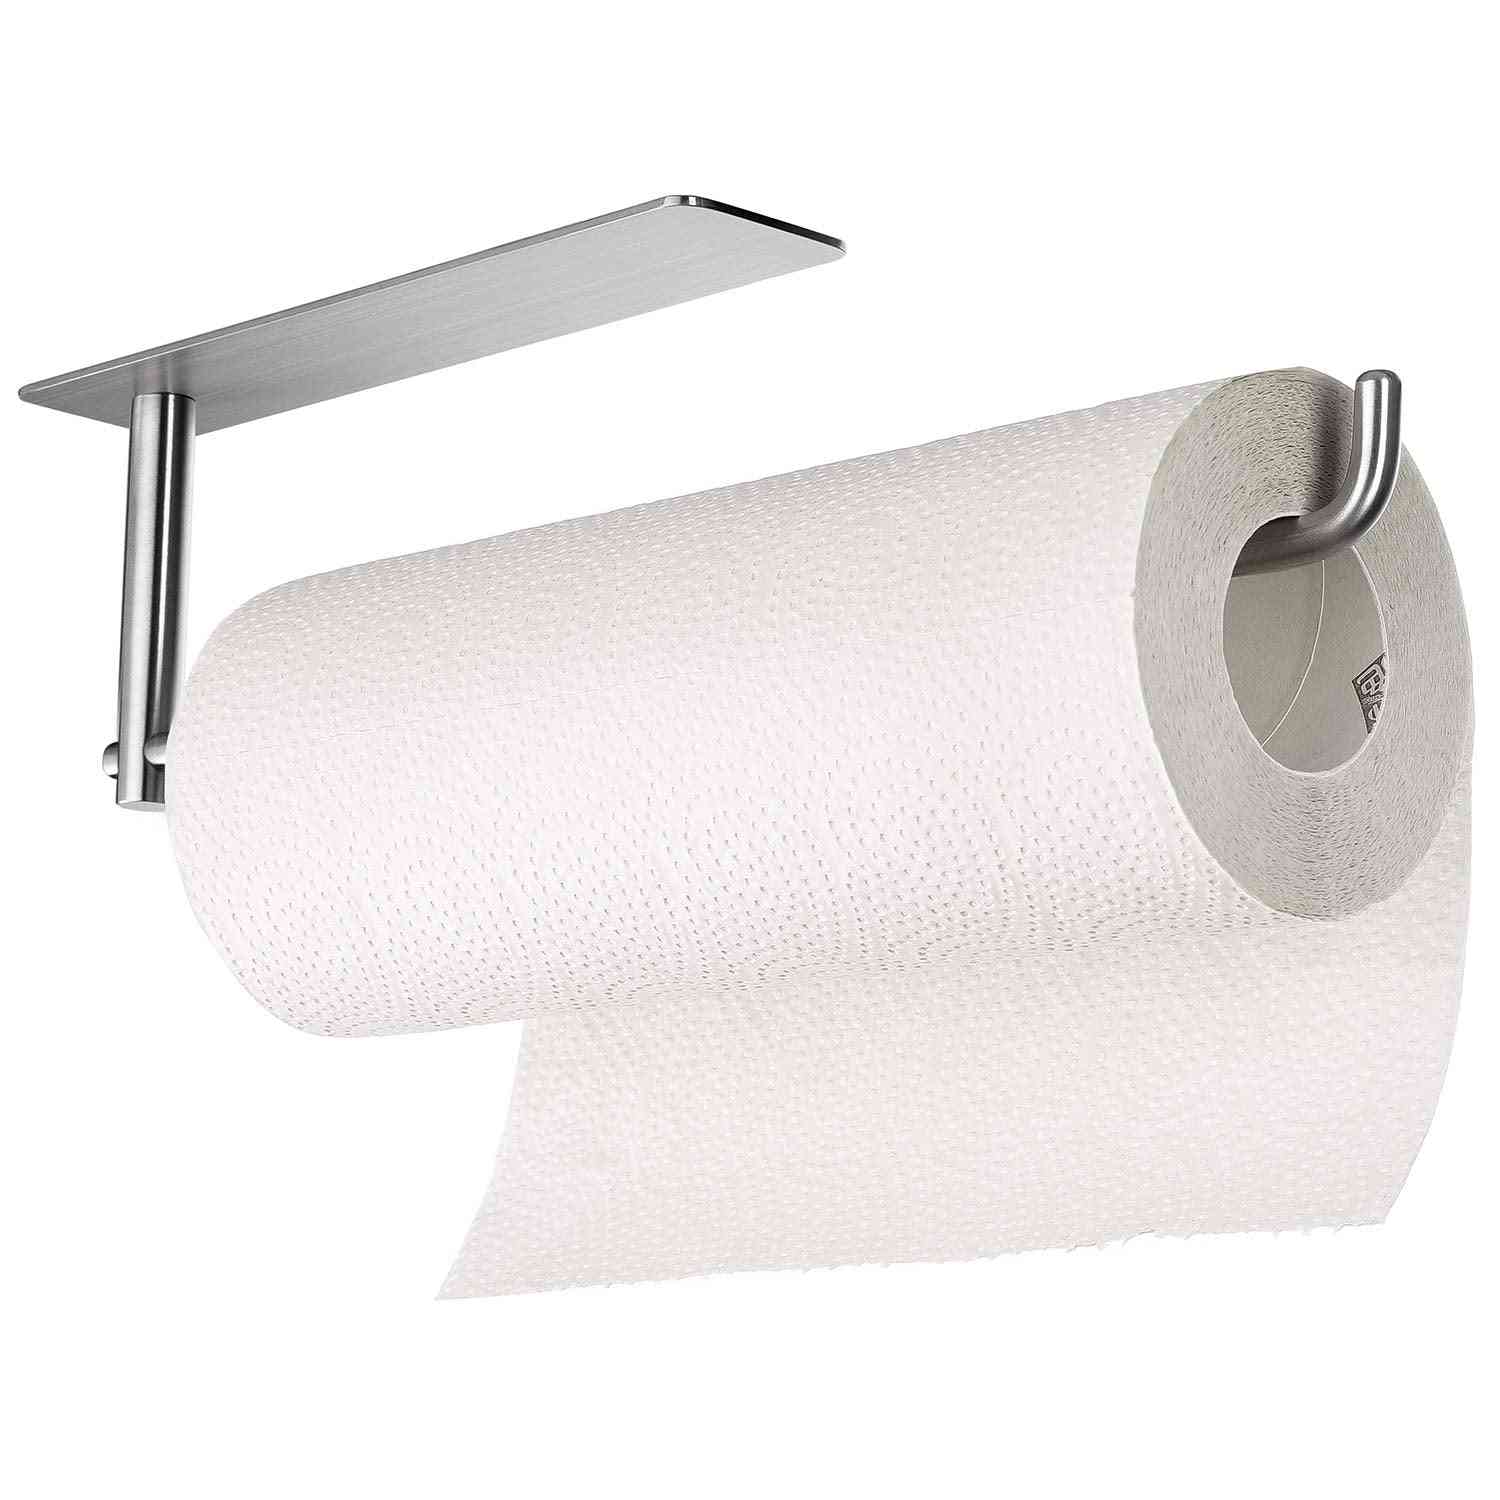 New Hot Fashion, Tissue Roll Holder, Portable Paper Towel Rack For Kitchen Bathroom.